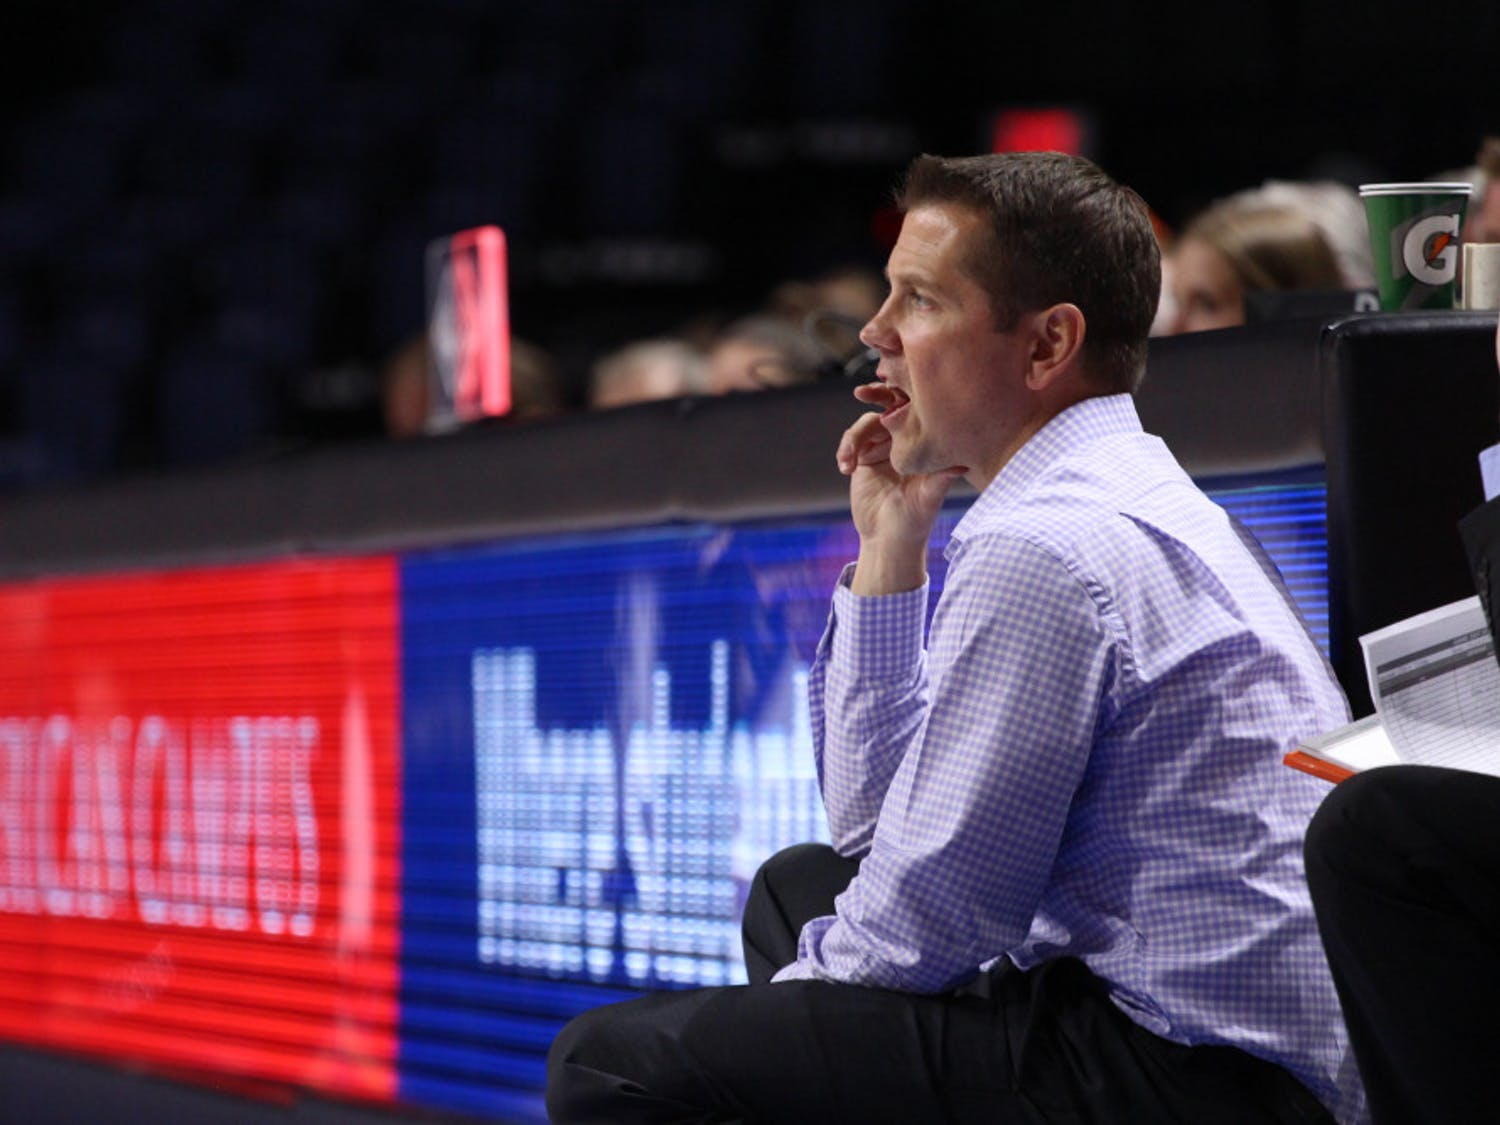 """""""They started to chip away at (the lead) and we started to collapse and cave in,"""" Florida coach Cameron Newbauer said after Florida's84-55 loss to Auburn. """"""""We've just got to have more of a resolve about ourselves and someone has to pick us up."""""""